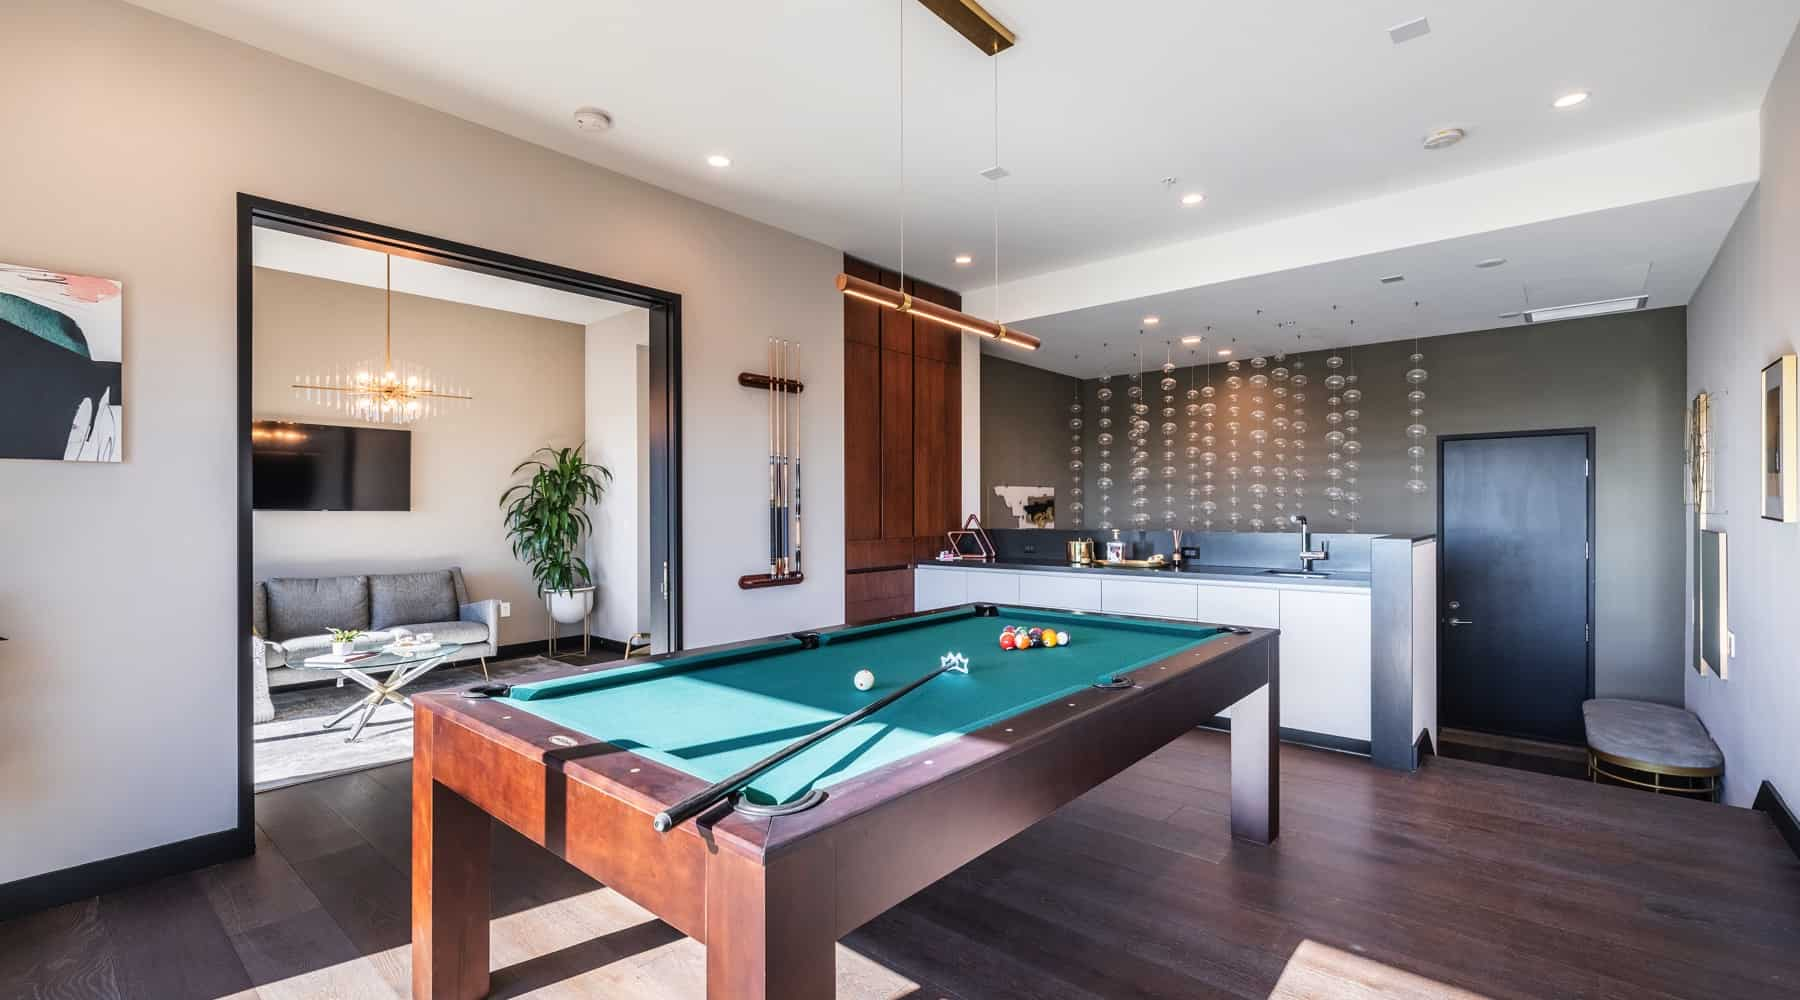 Penthouse_6_Pool_Table